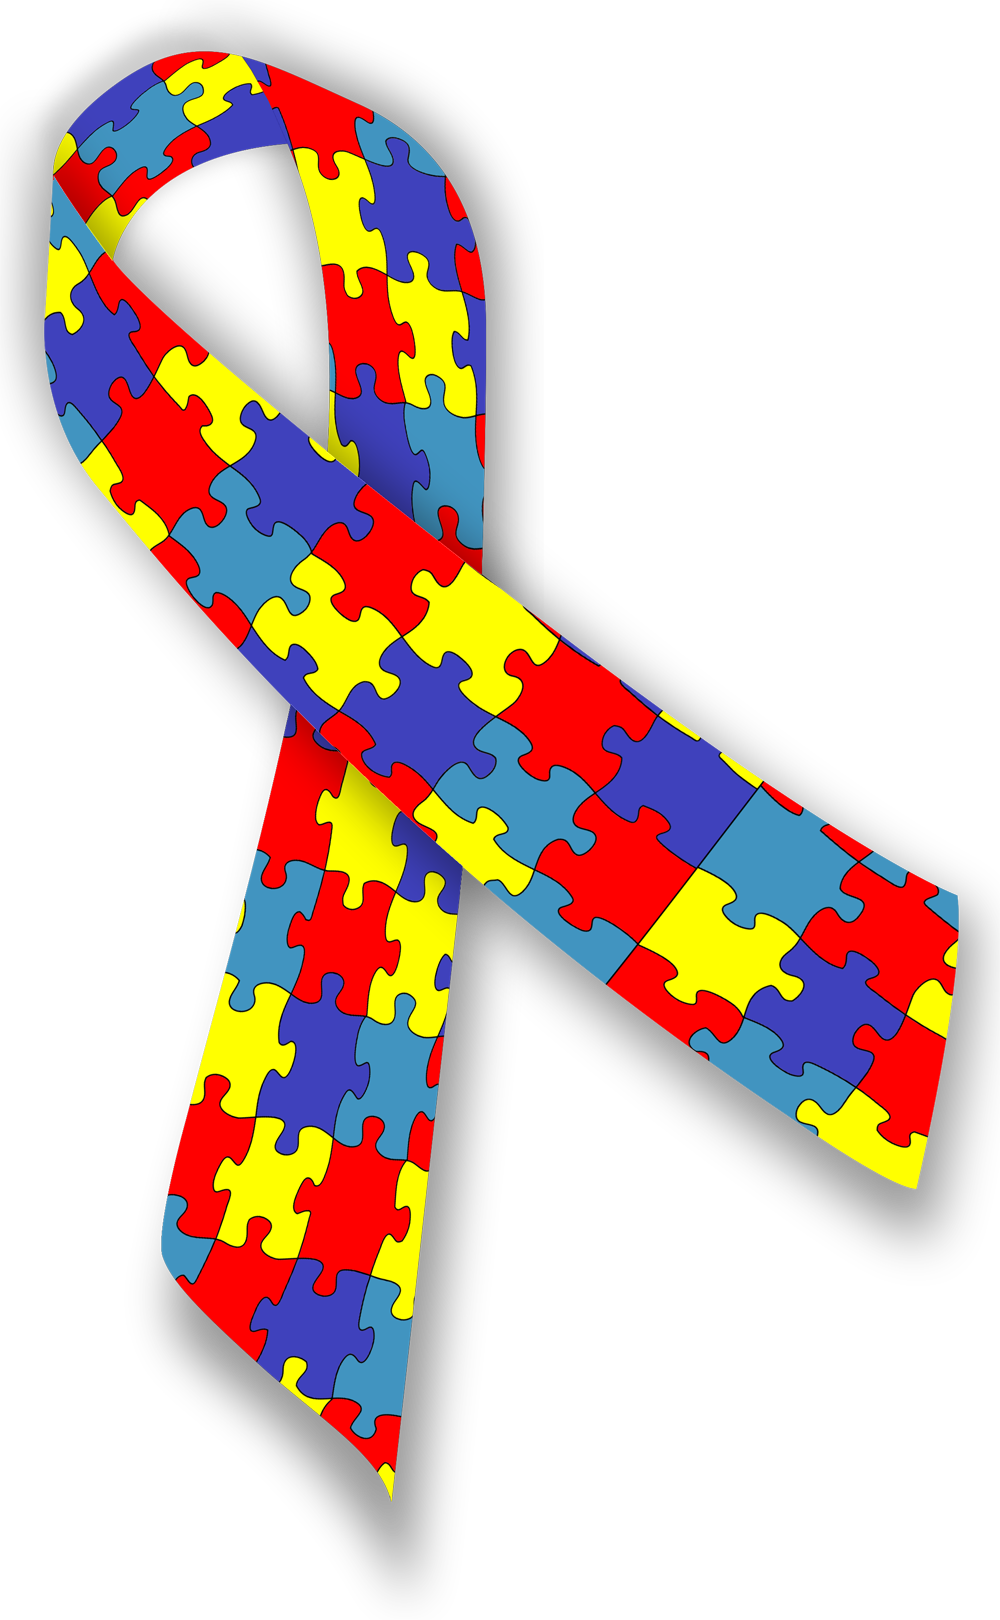 jpg download Awareness the puzzle piece. Autism clipart colourful border